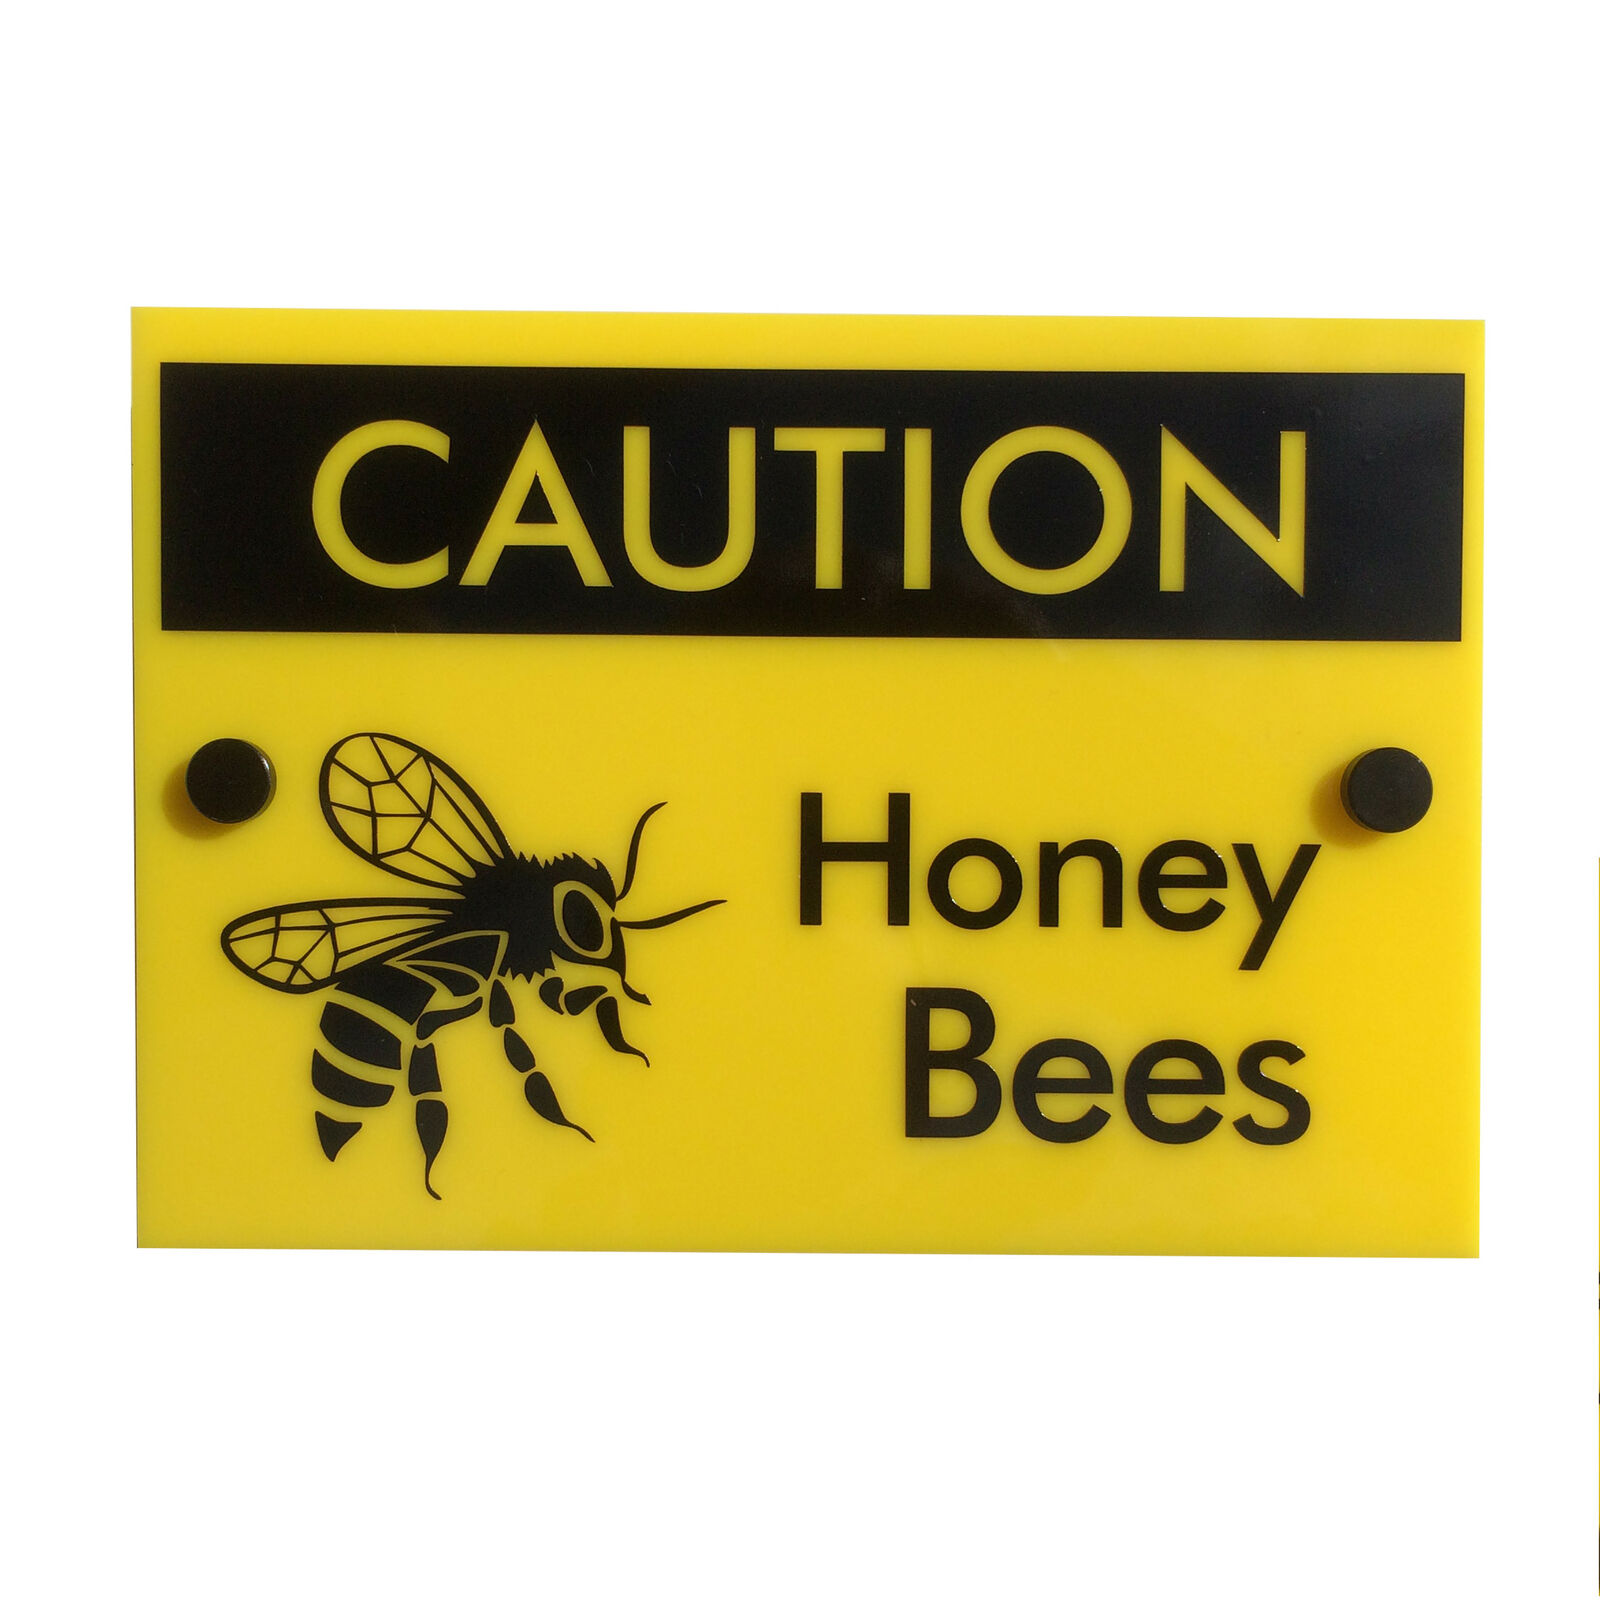 Bee Keeping Warning Sign 'Caution Honey Bees' water&weather proof FREE SHIPPING